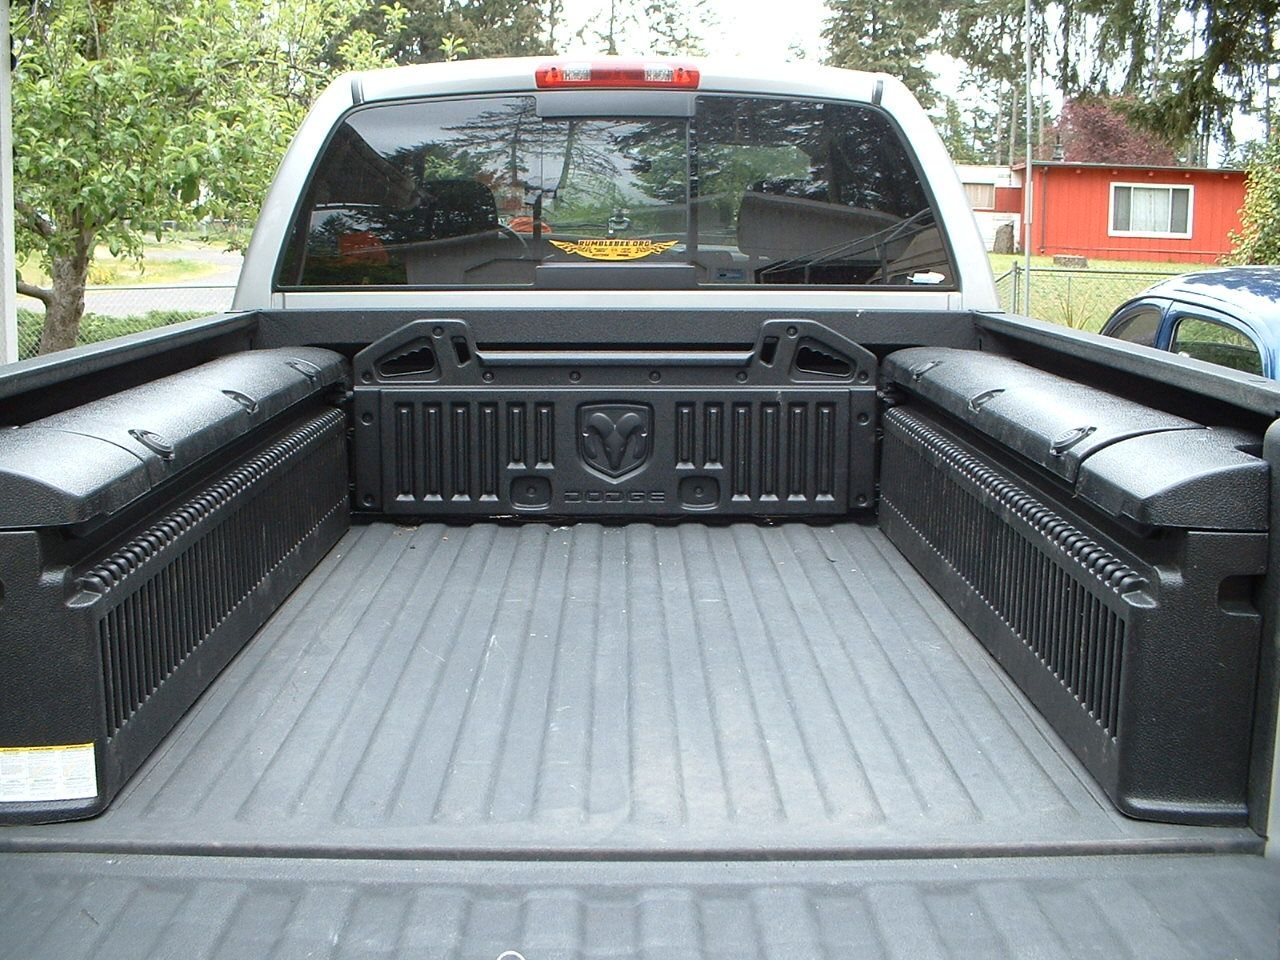 Spray on bedliner, Bed liner, Liner